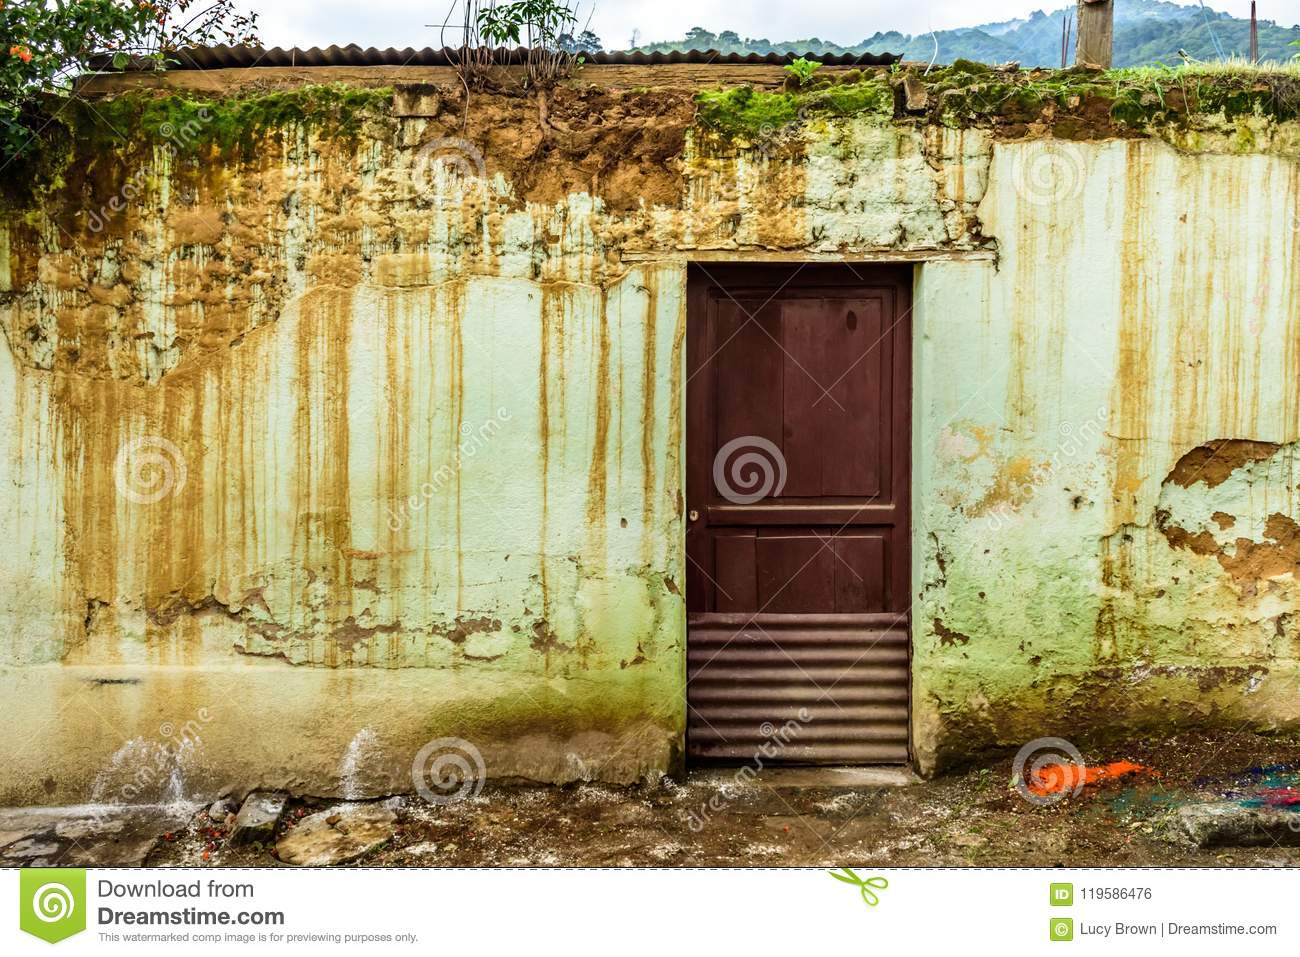 Rustic, weathered house exterior, Central America